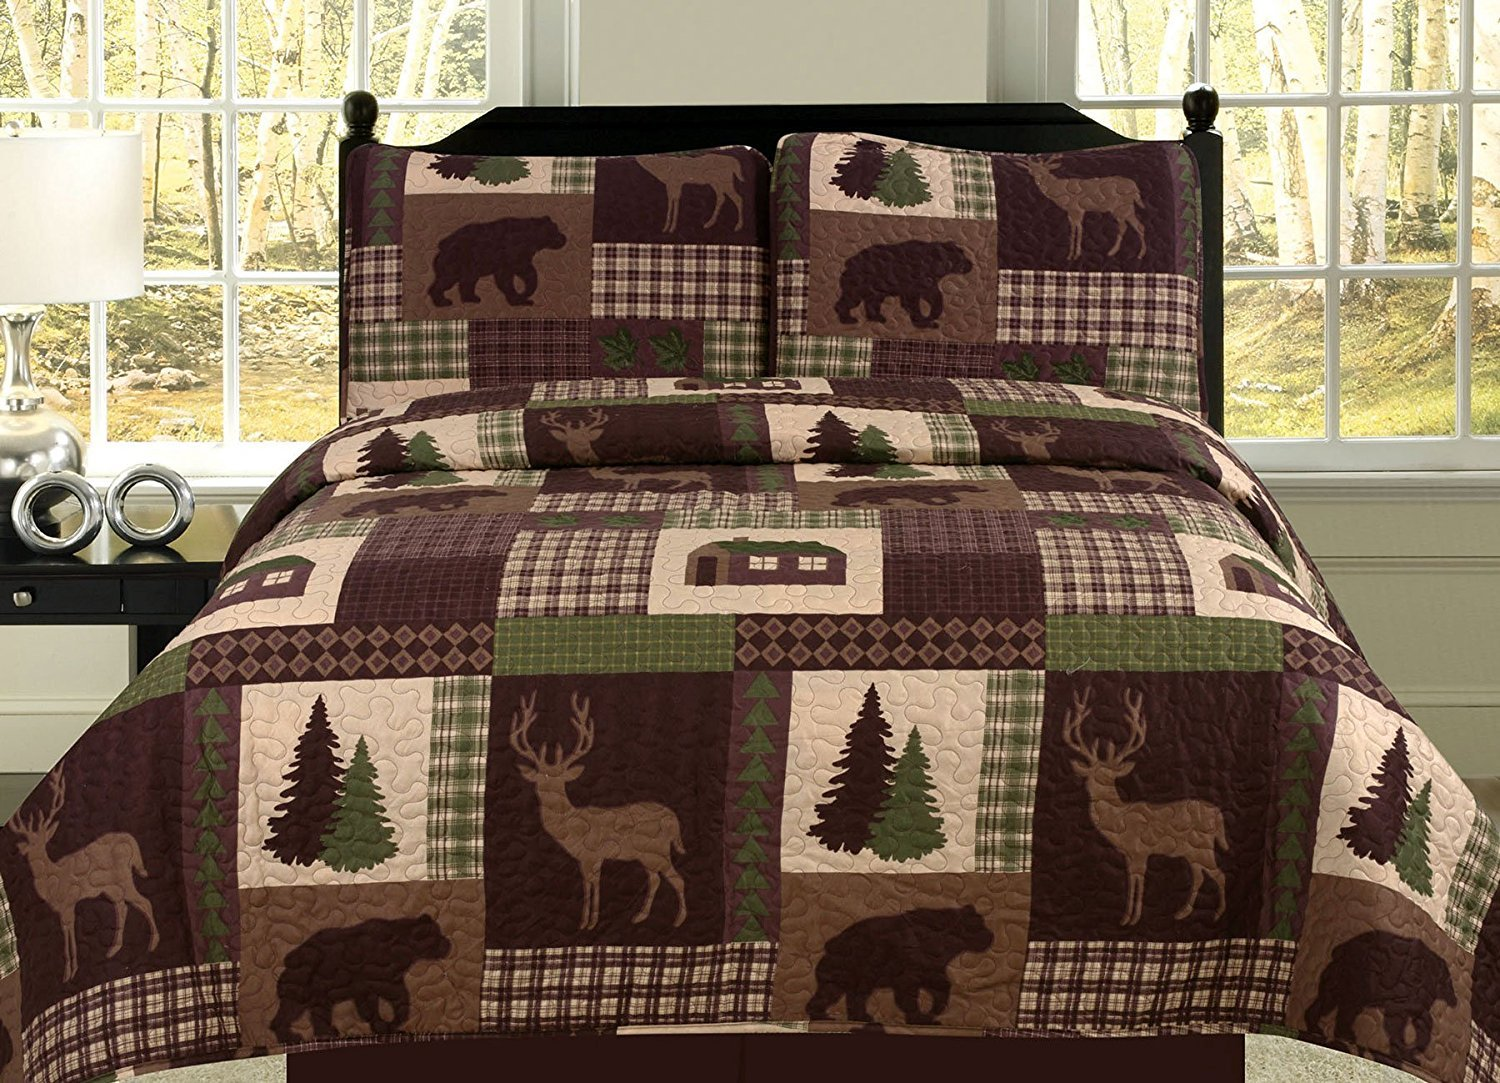 Full/Queen Quilt 3 Piece Set Rustic Cabin Lodge Deer and Bear Coverlet Bedspread